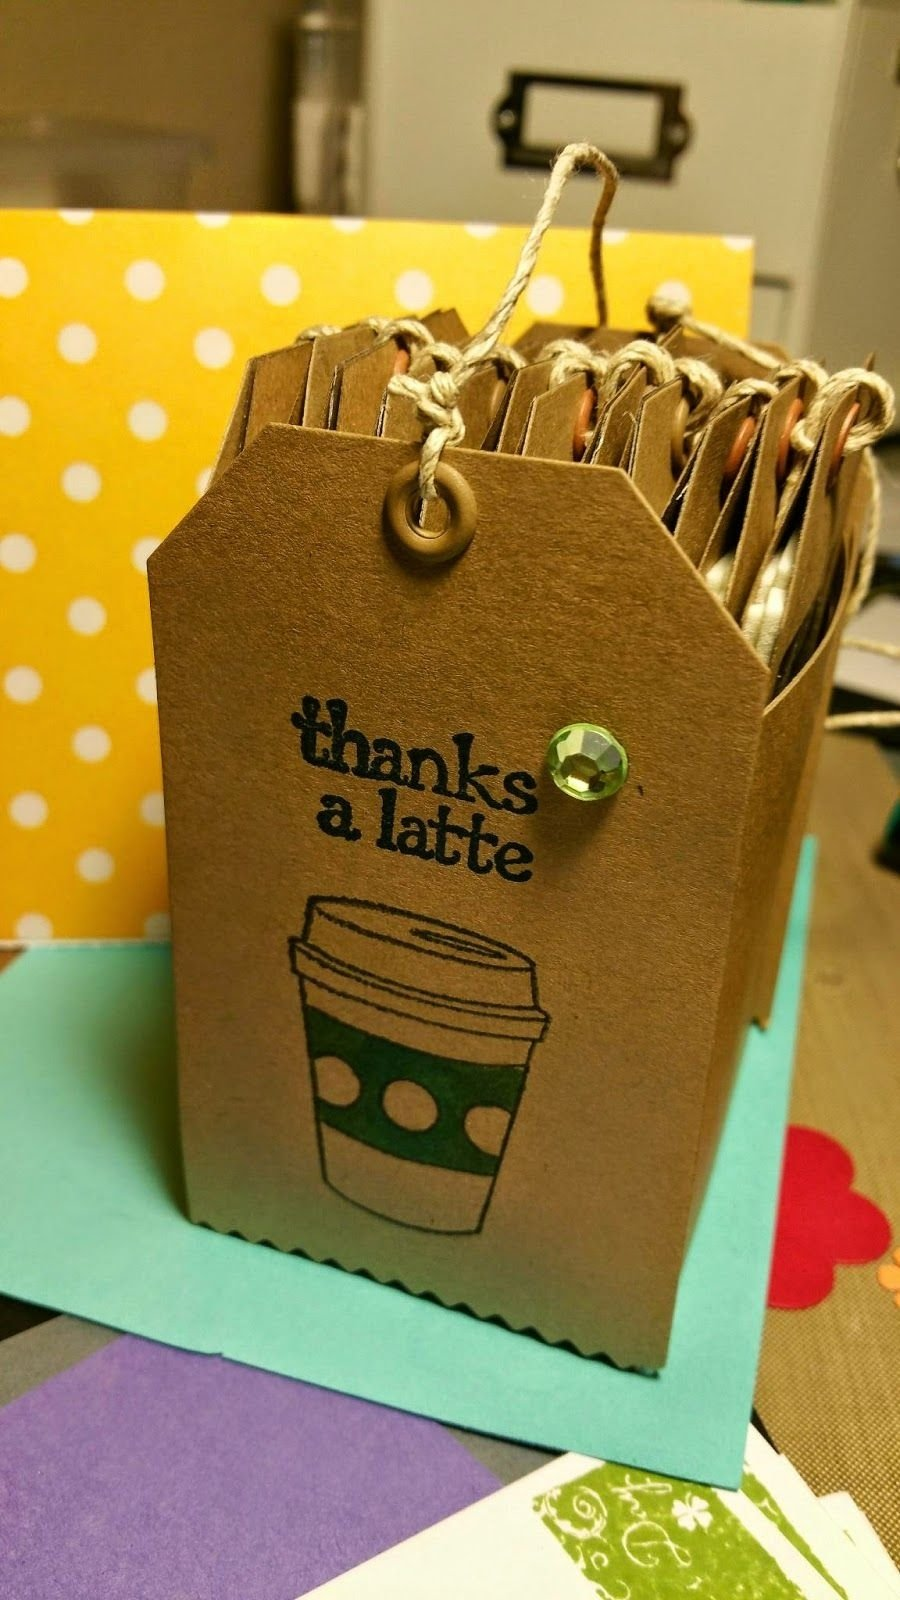 crafting is good therapy: administrative professionals day | work